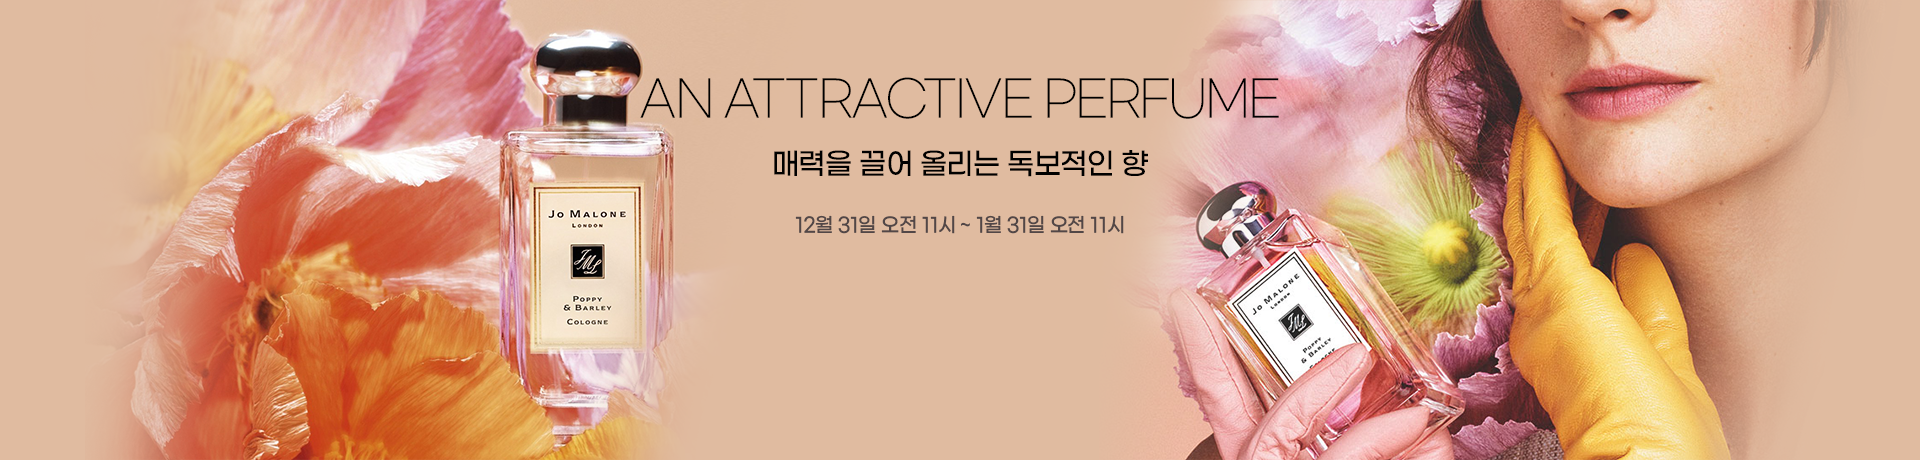 210104_sy_attractive_perfume_pc_e0bba0_v2